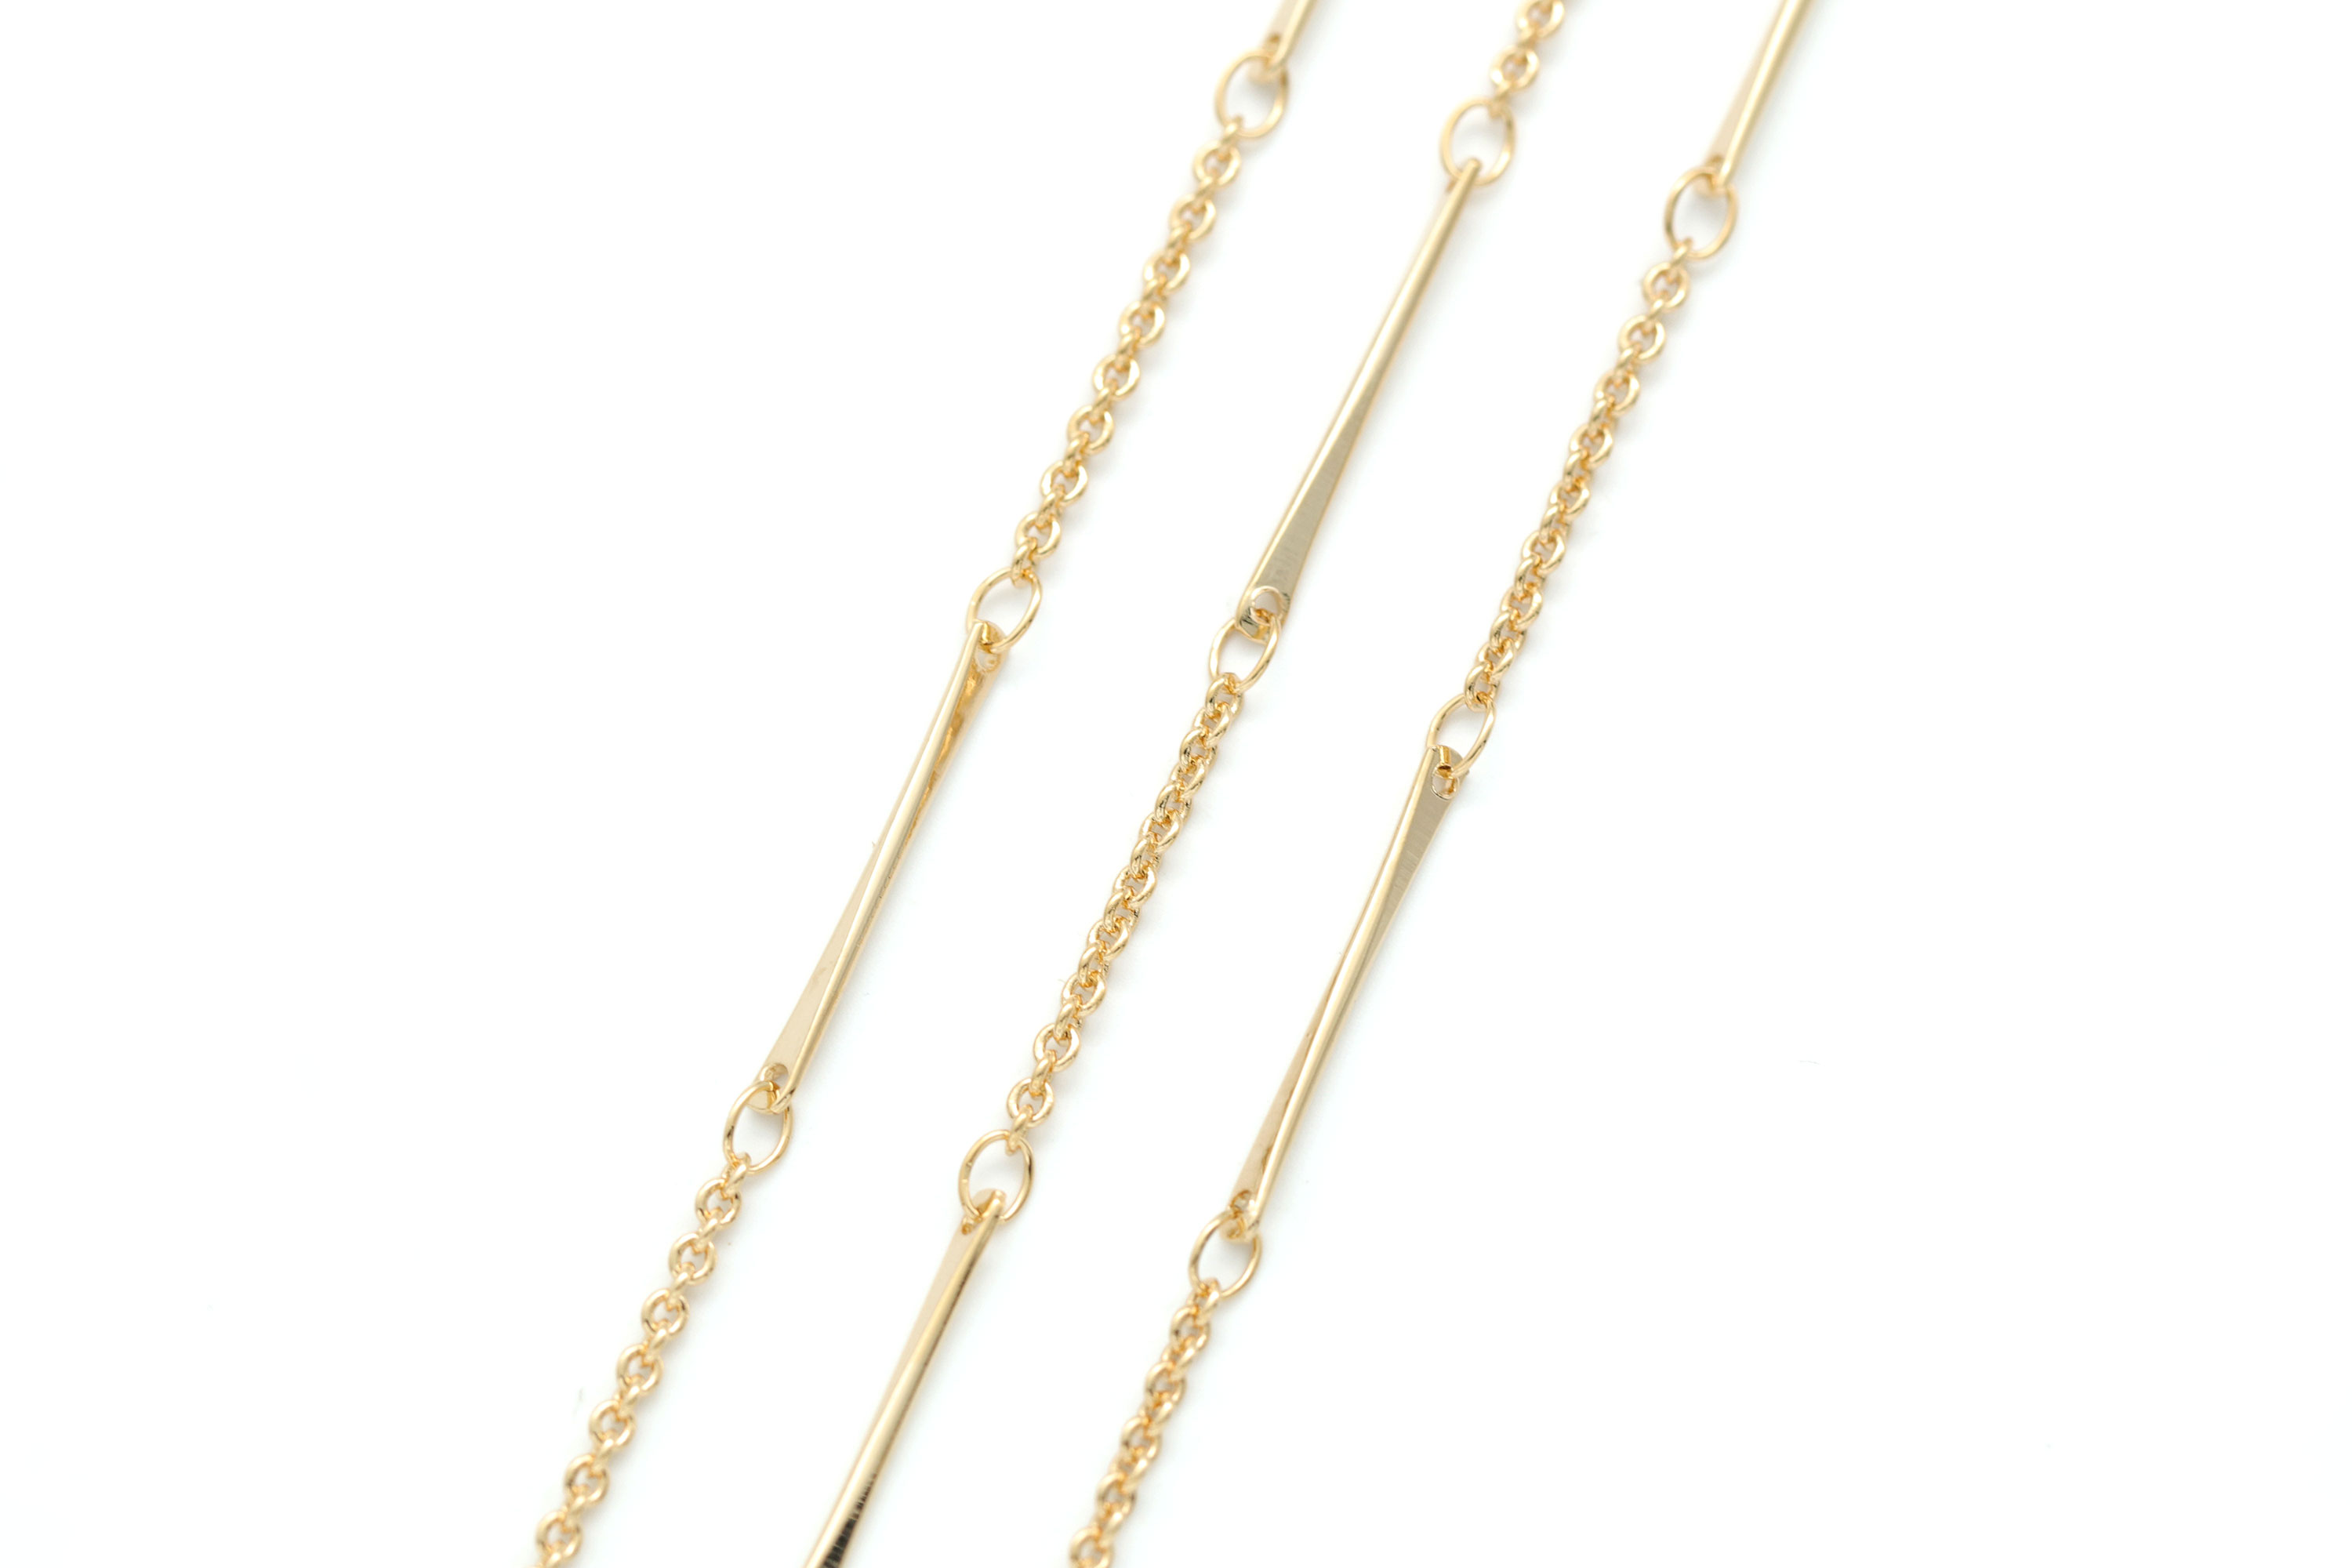 [CJ46-08]Stick Chain, 1m, Stick 21mm, 1mm thick, 16K gold plated brass, Nickel free, Stylish adjustment chain